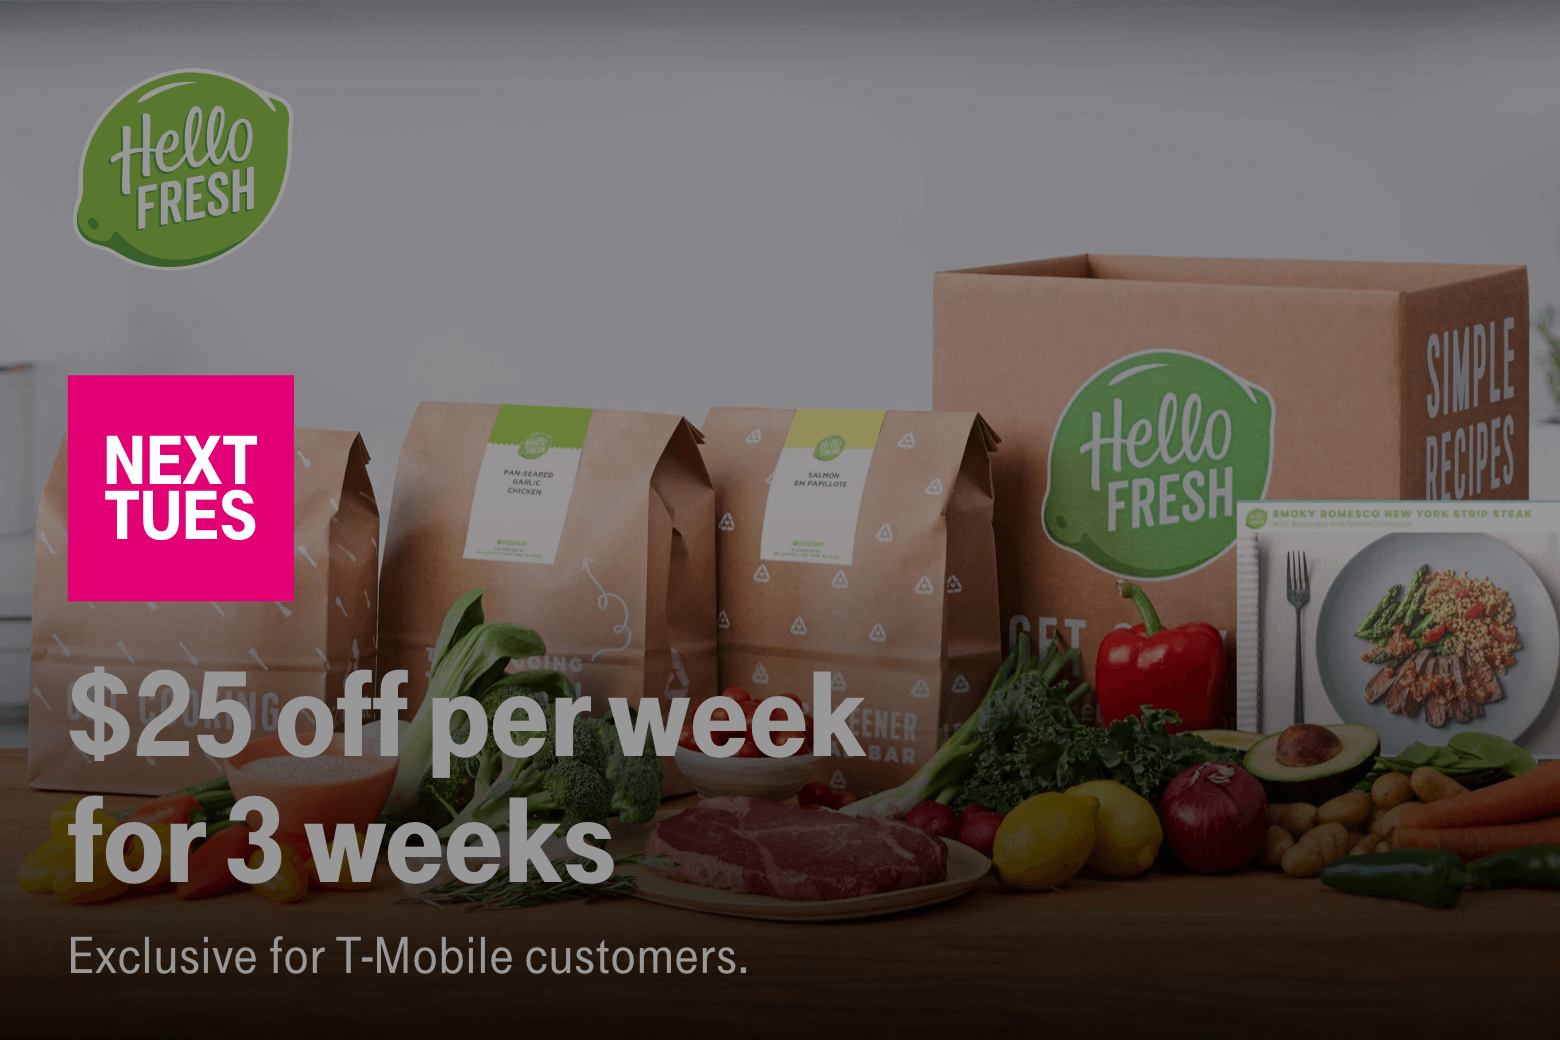 Hello Fresh. Next Tuesday. $25 off per week for 3 weeks. Exclusive for T-Mobile customers.